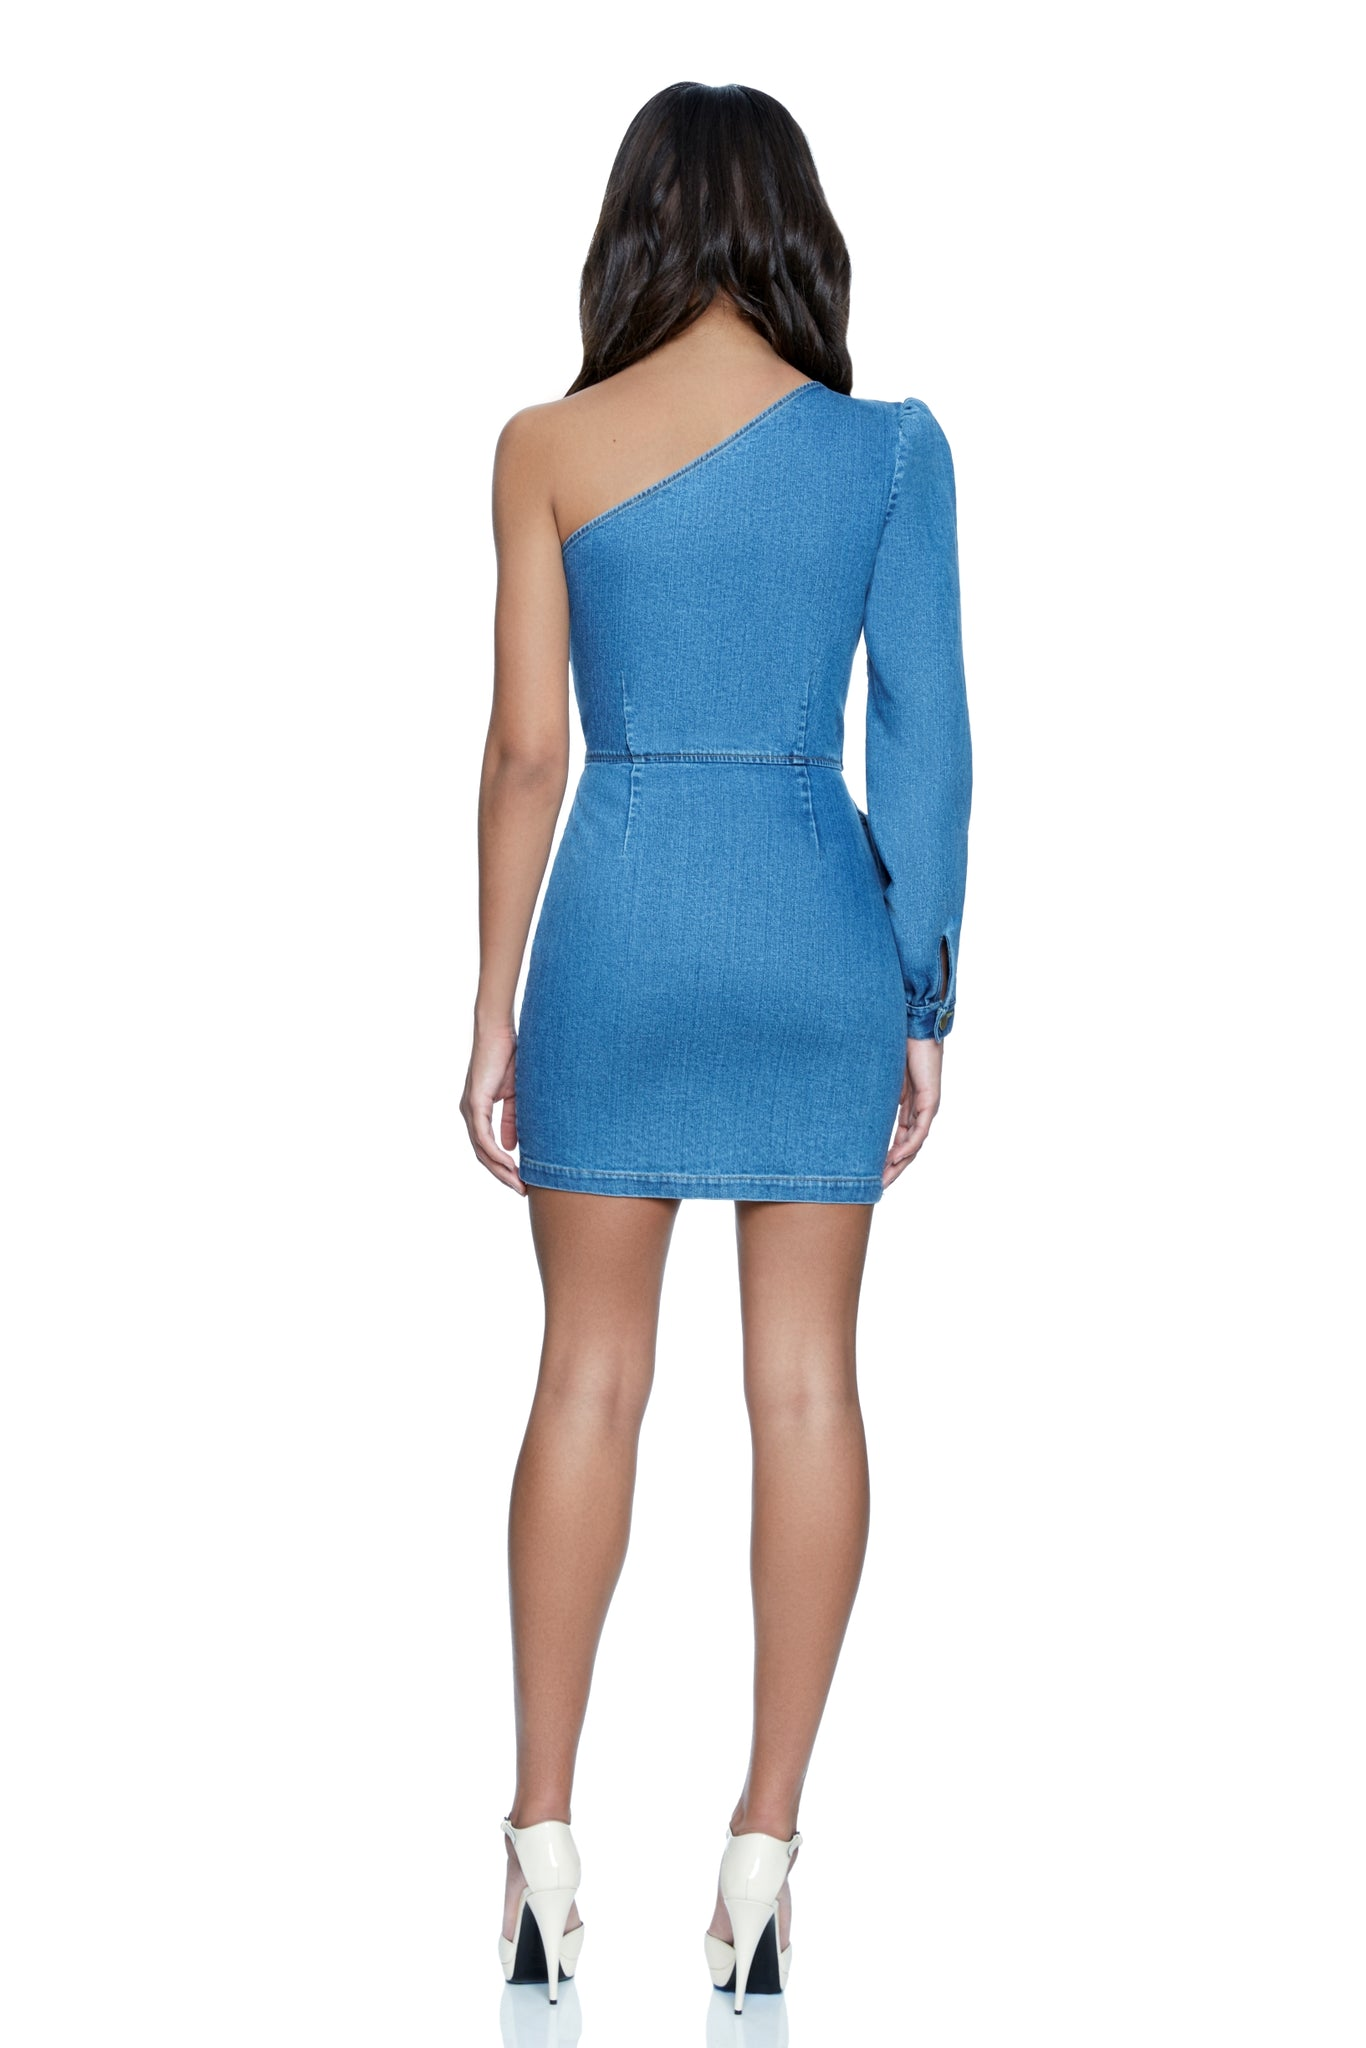 Maya Denim One-Shoulder Dress